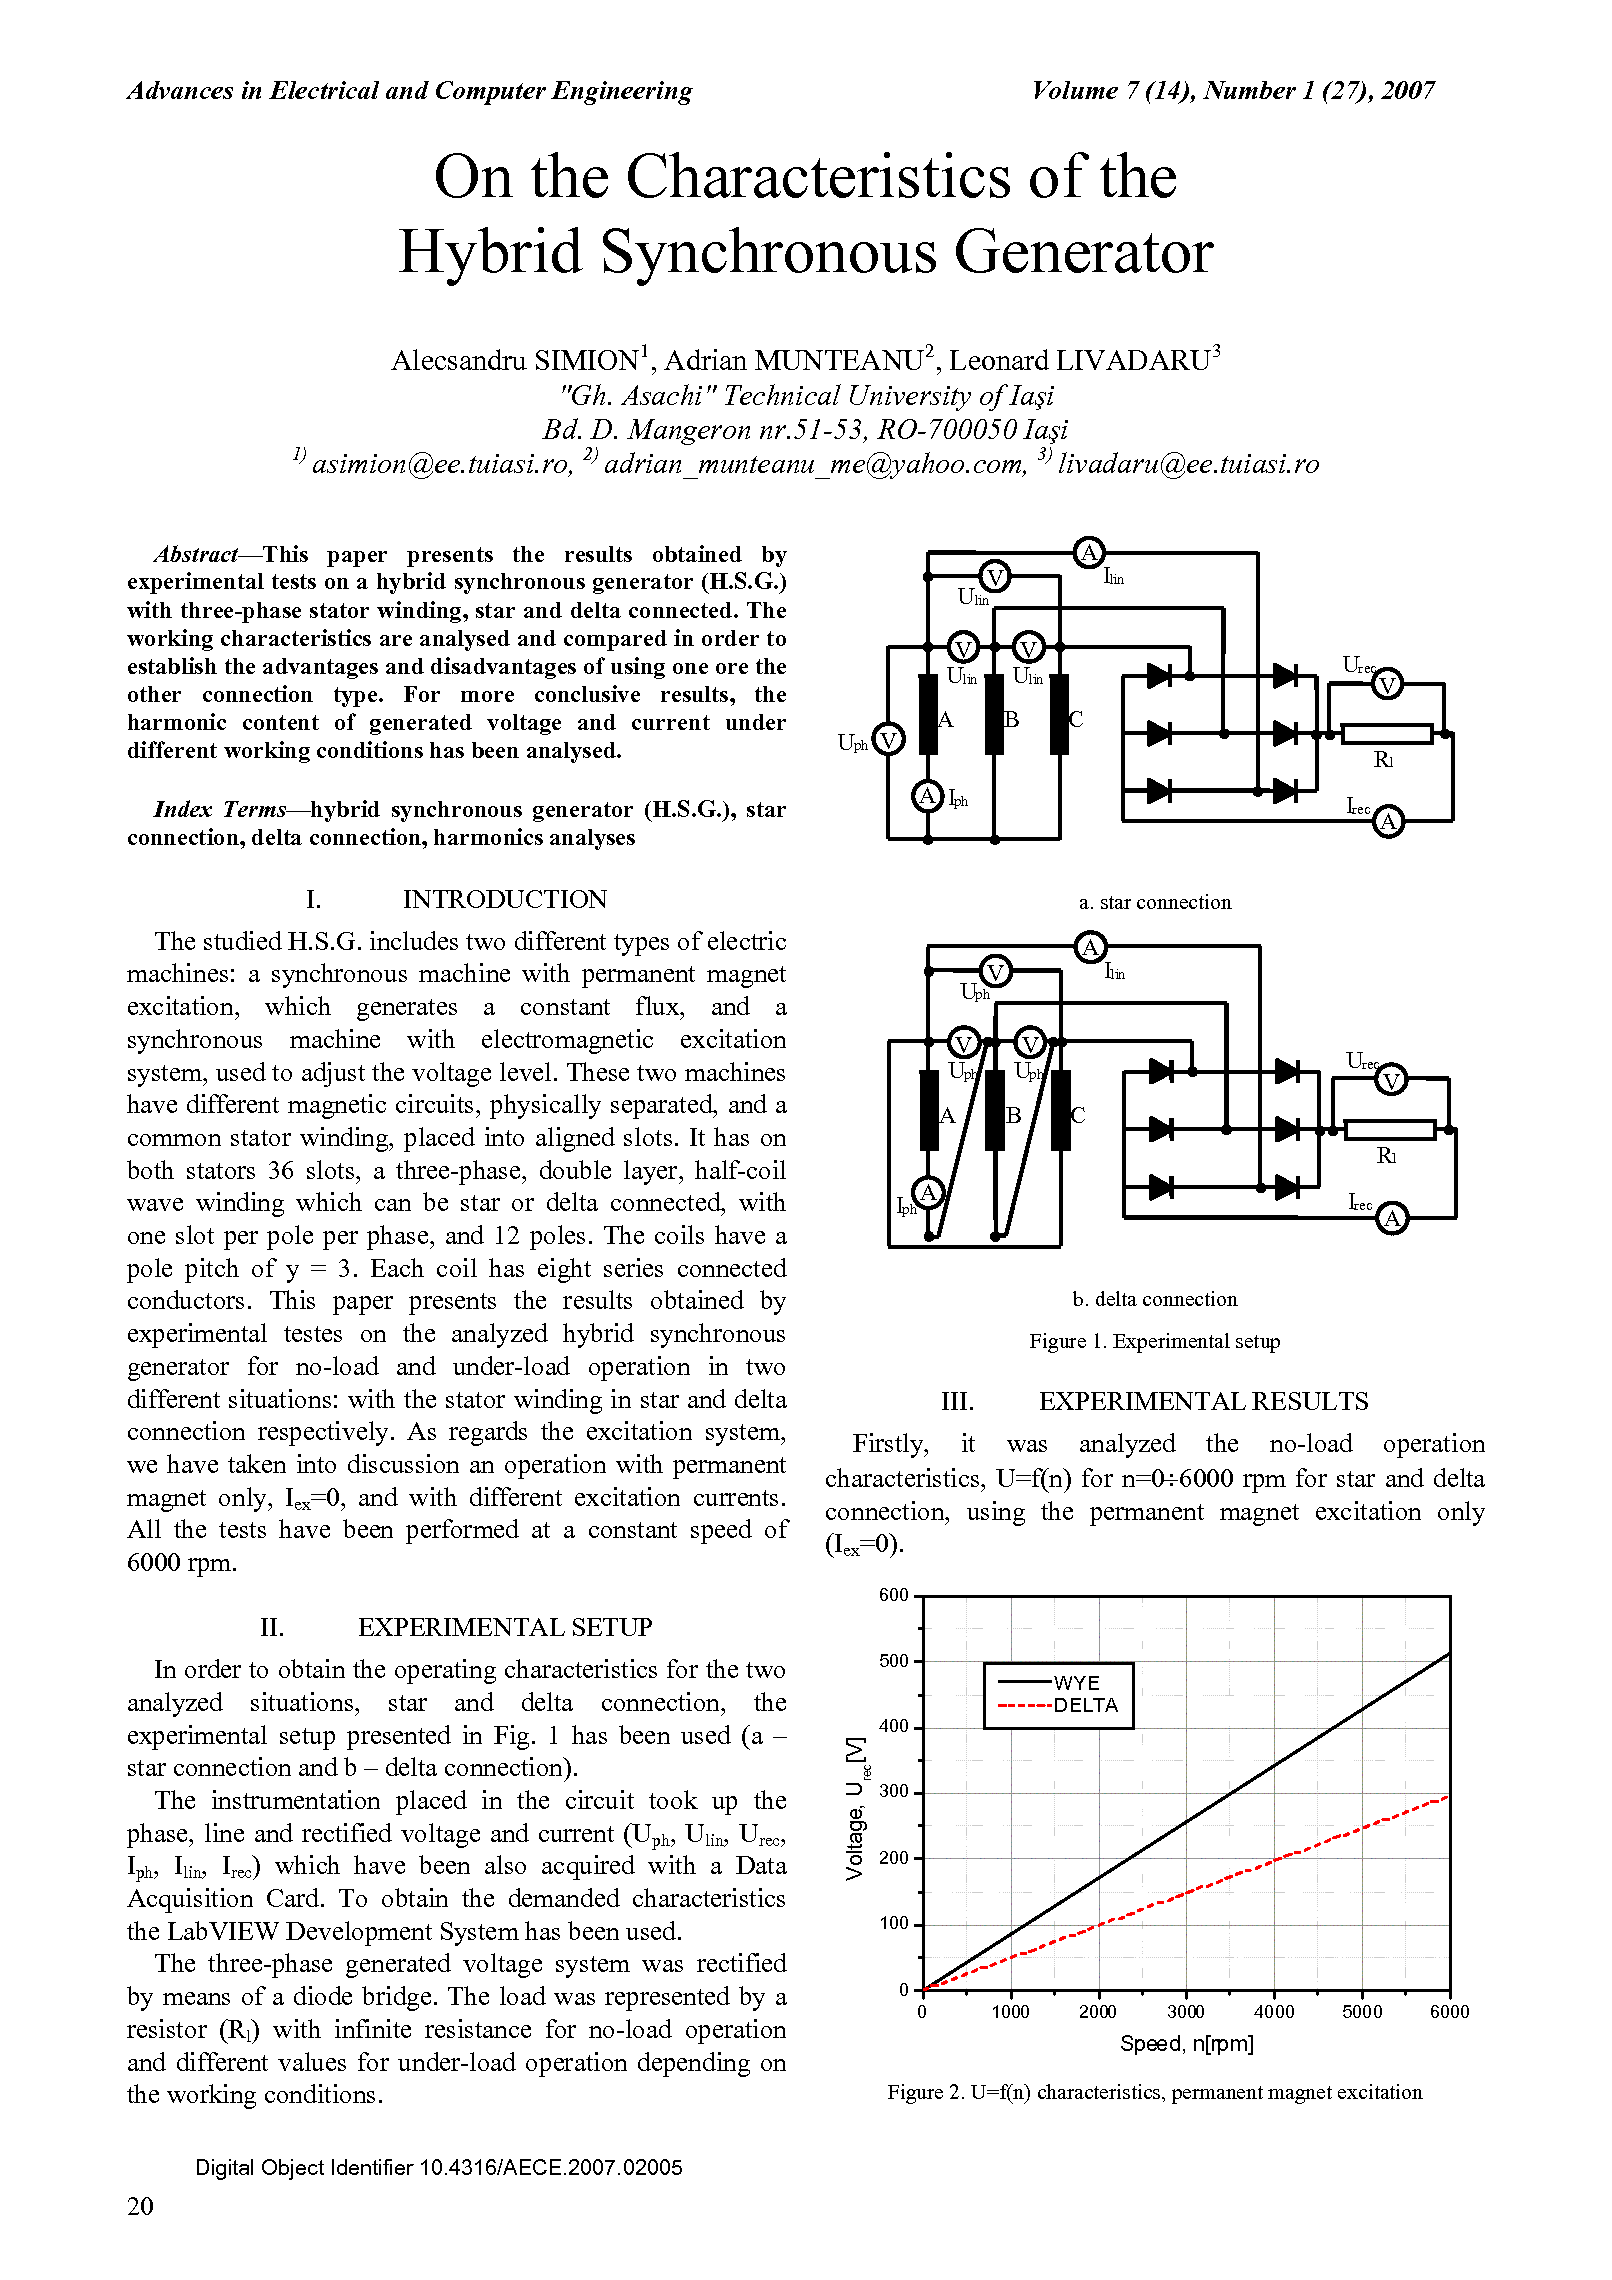 PDF Quickview for paper with DOI:10.4316/AECE.2007.02005